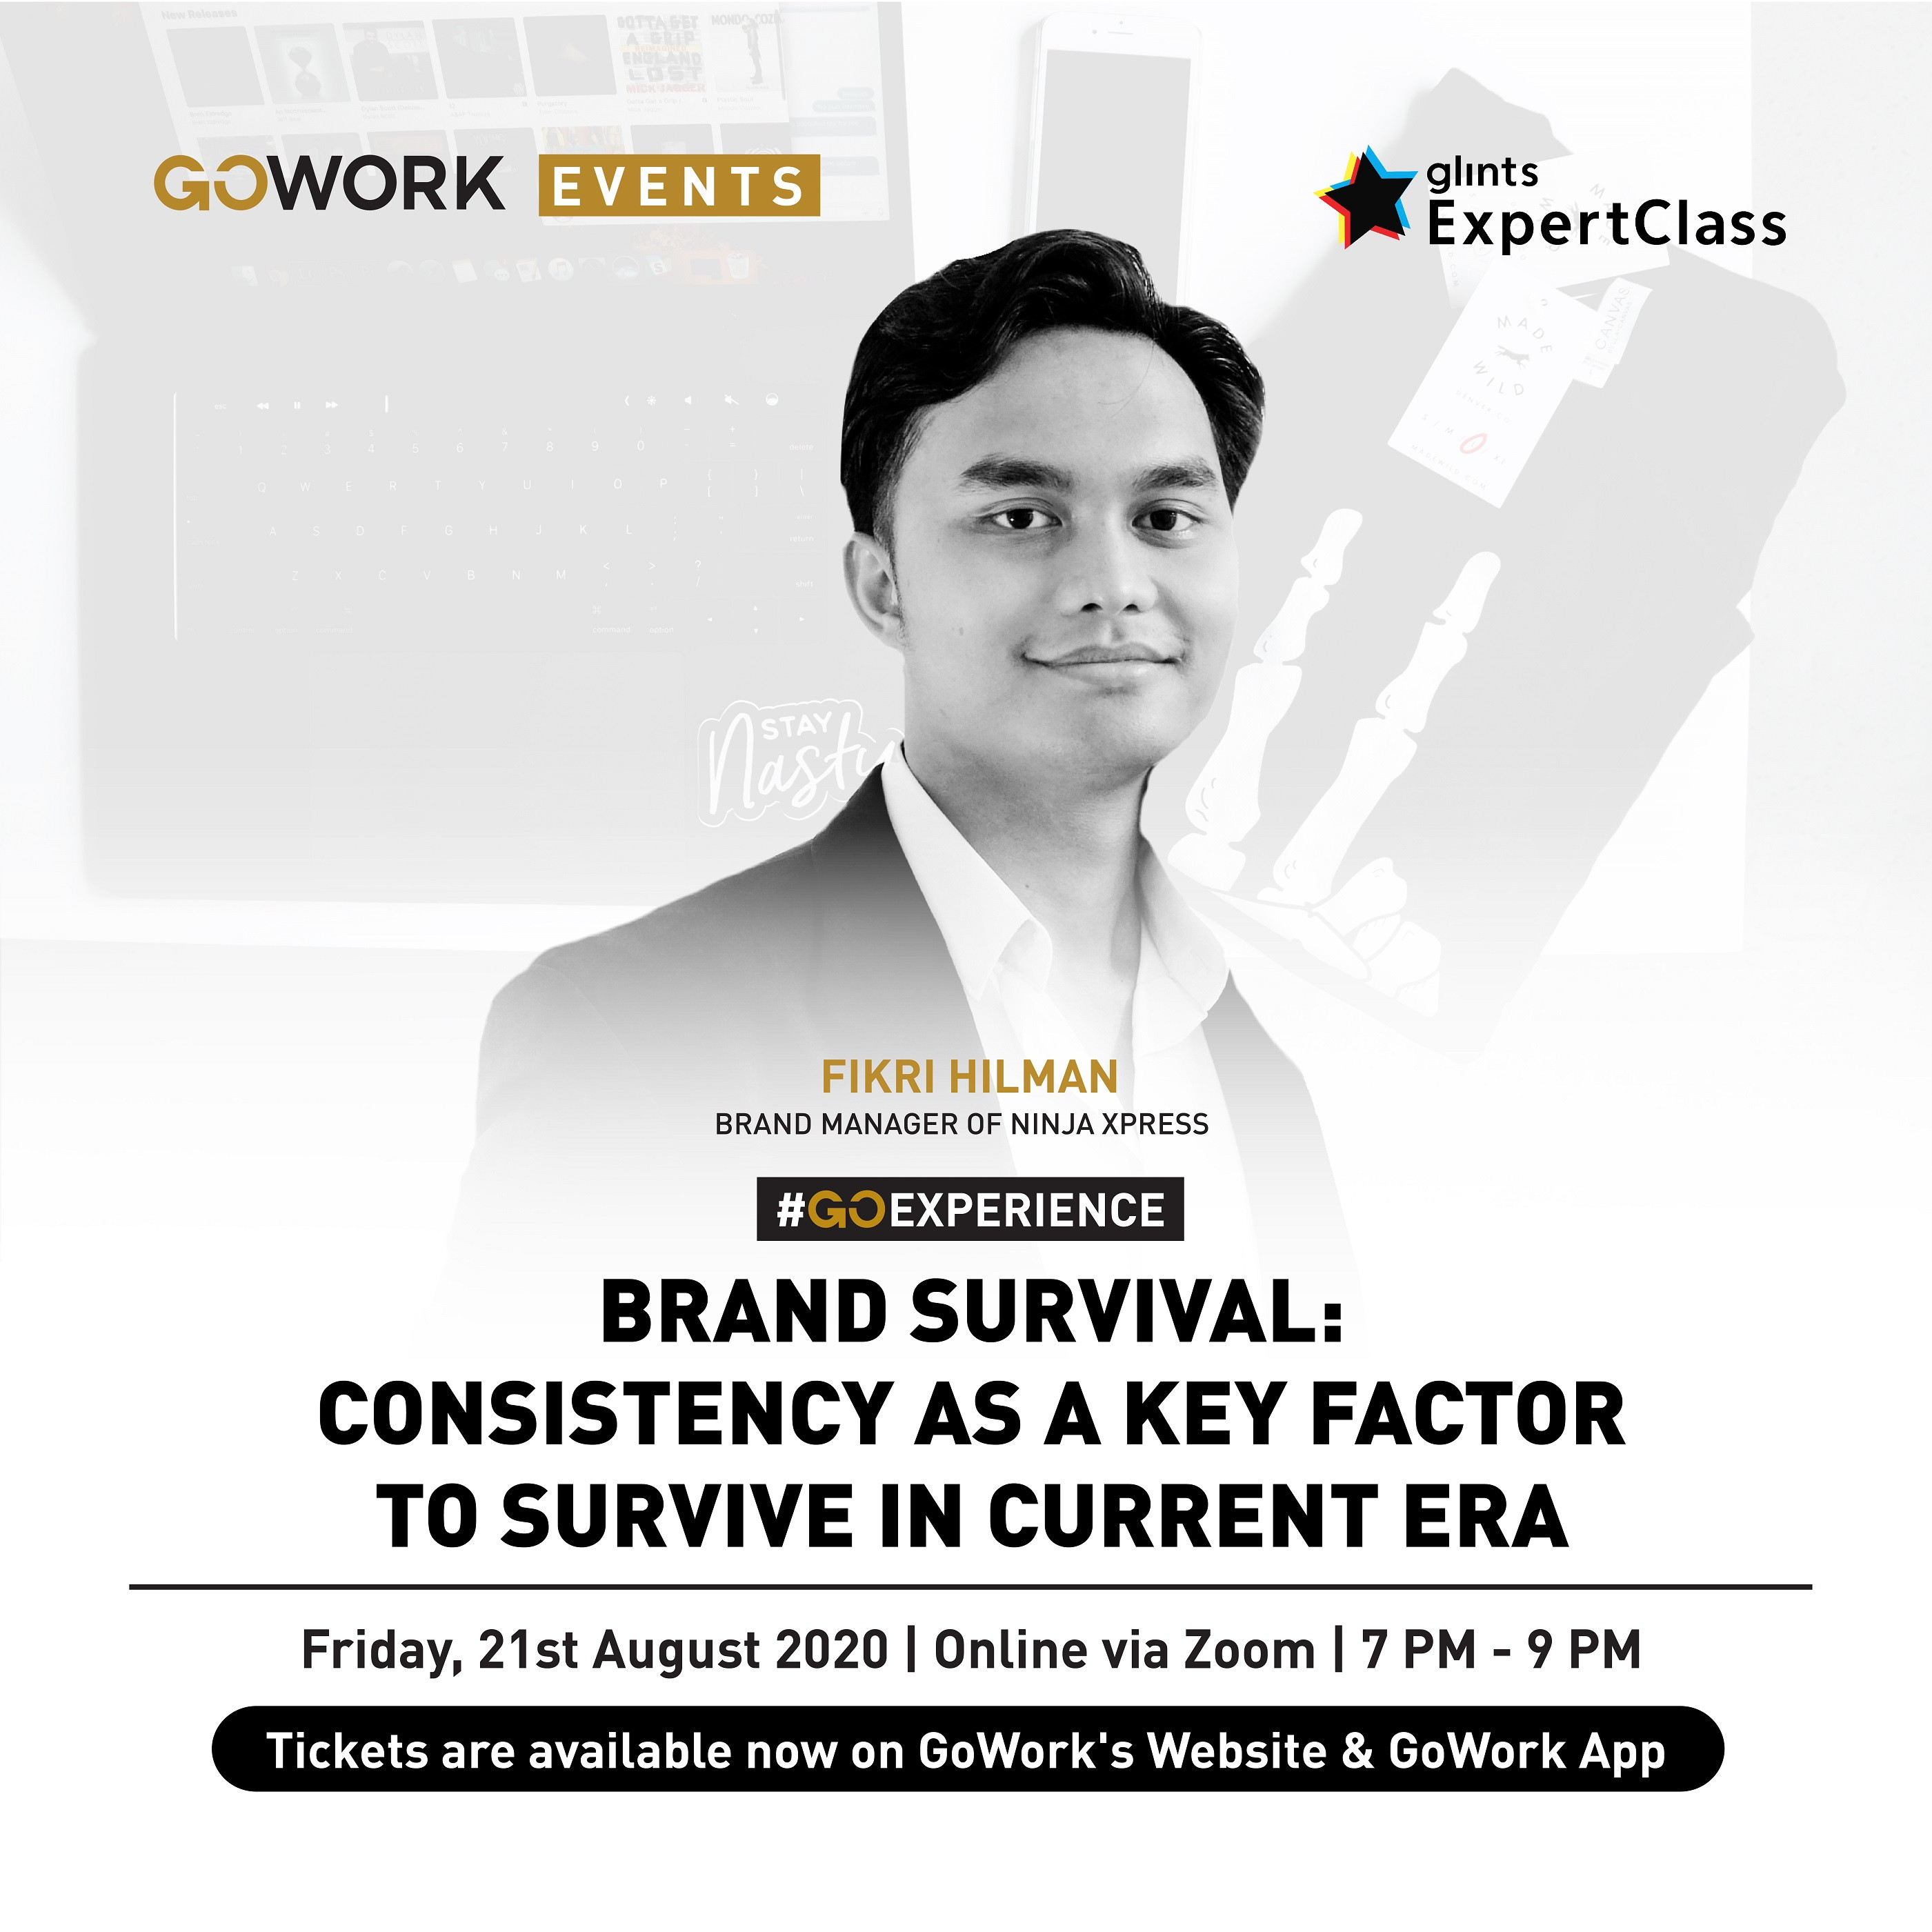 Brand Survival: Consistency as a Key Factor to Survive in Current Era